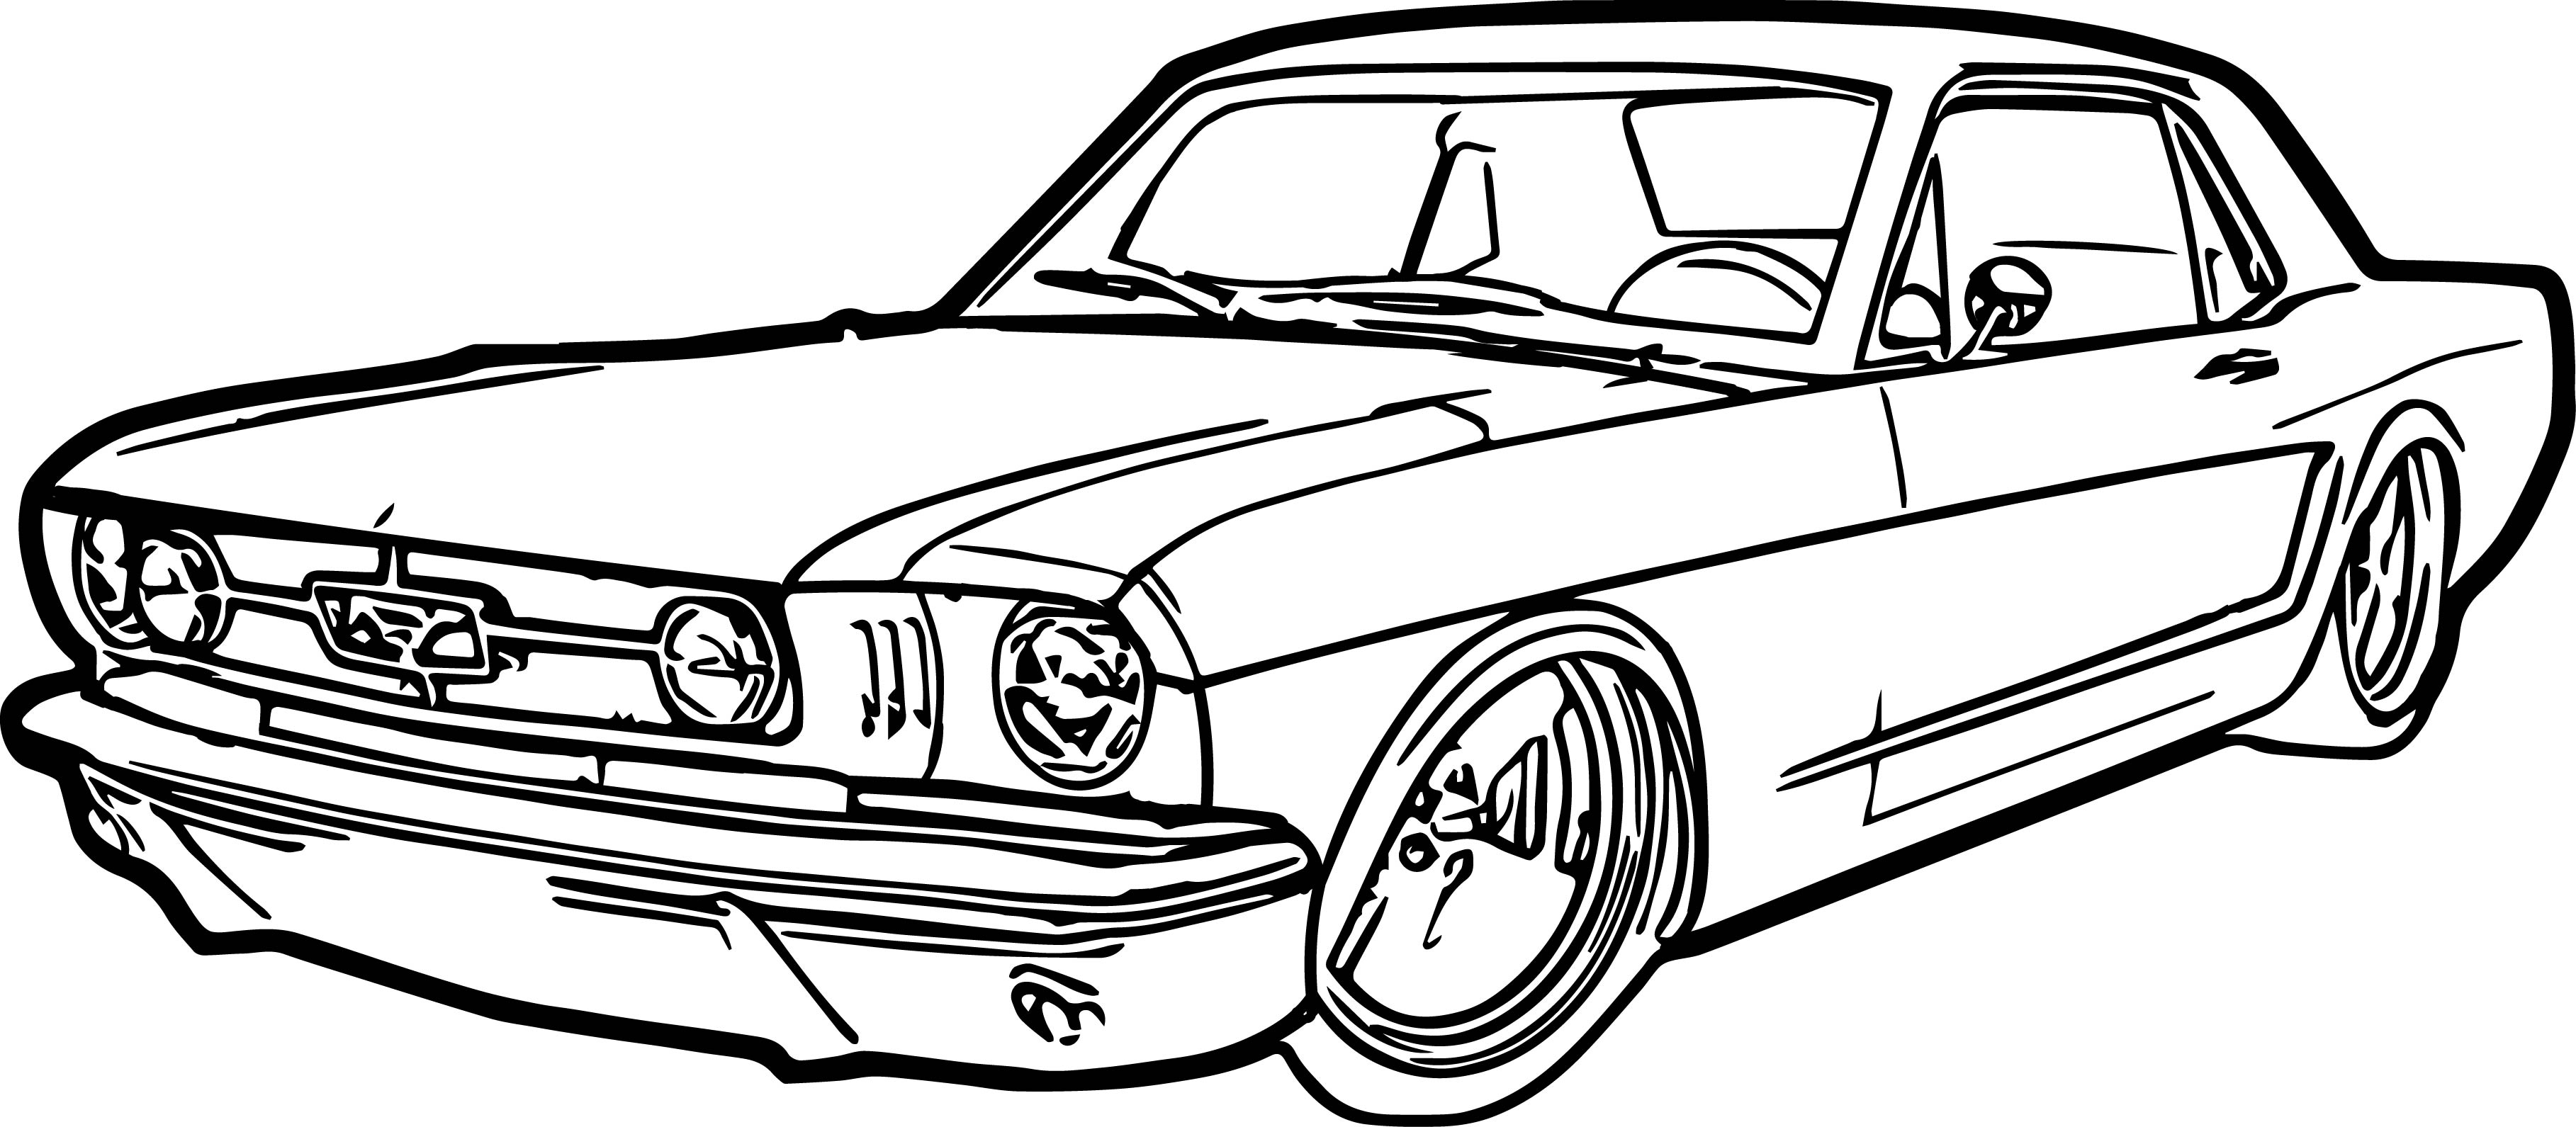 race cars coloring free printable race car coloring pages for kids